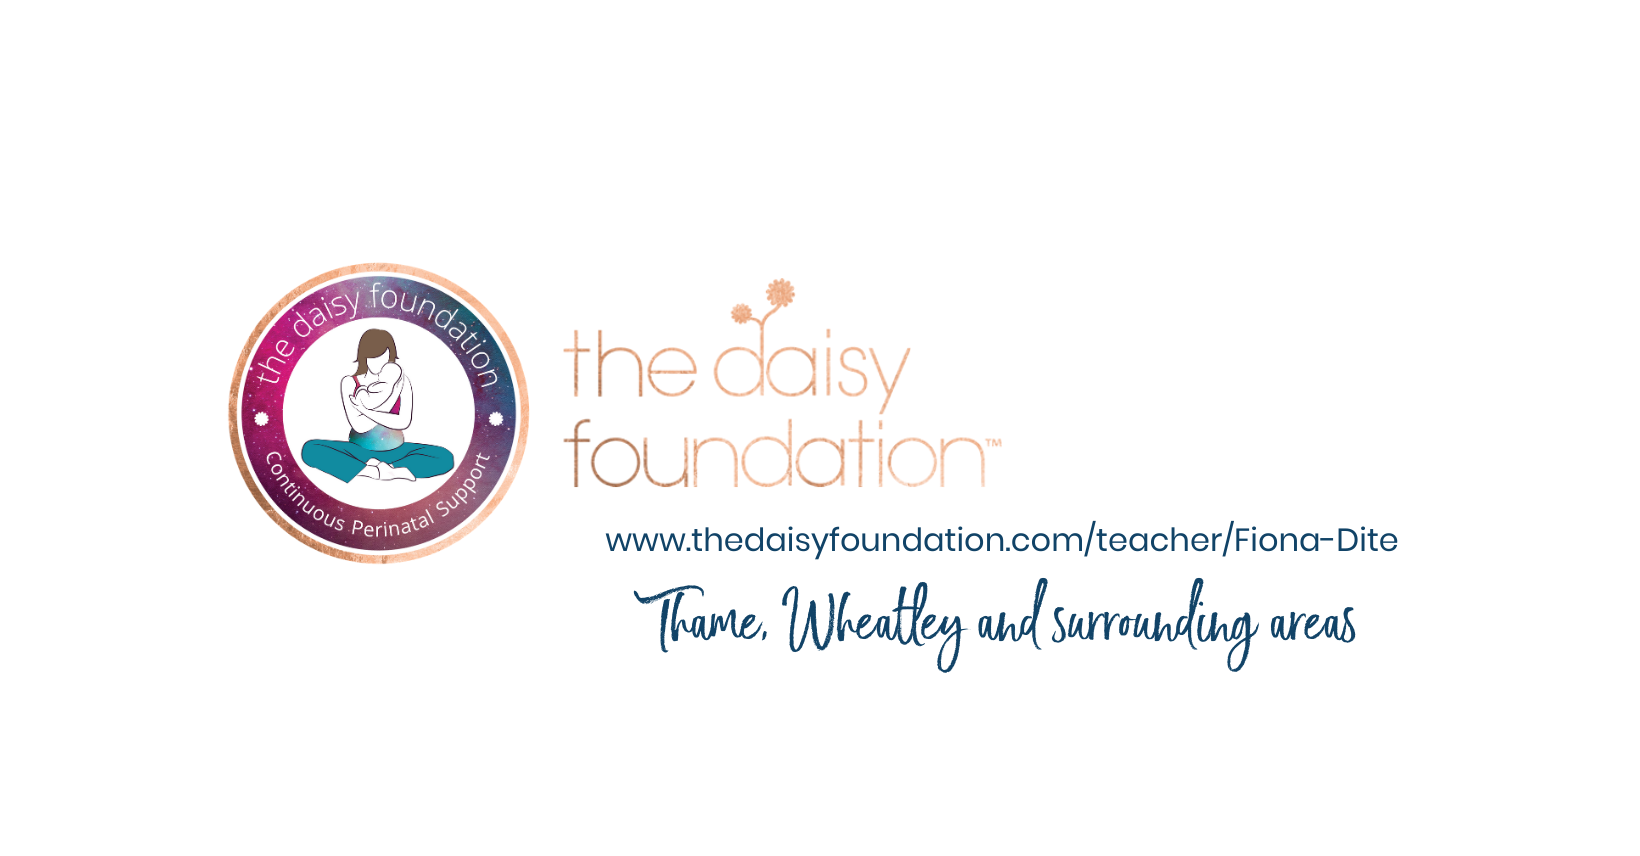 The Daisy Foundation Thame's main image